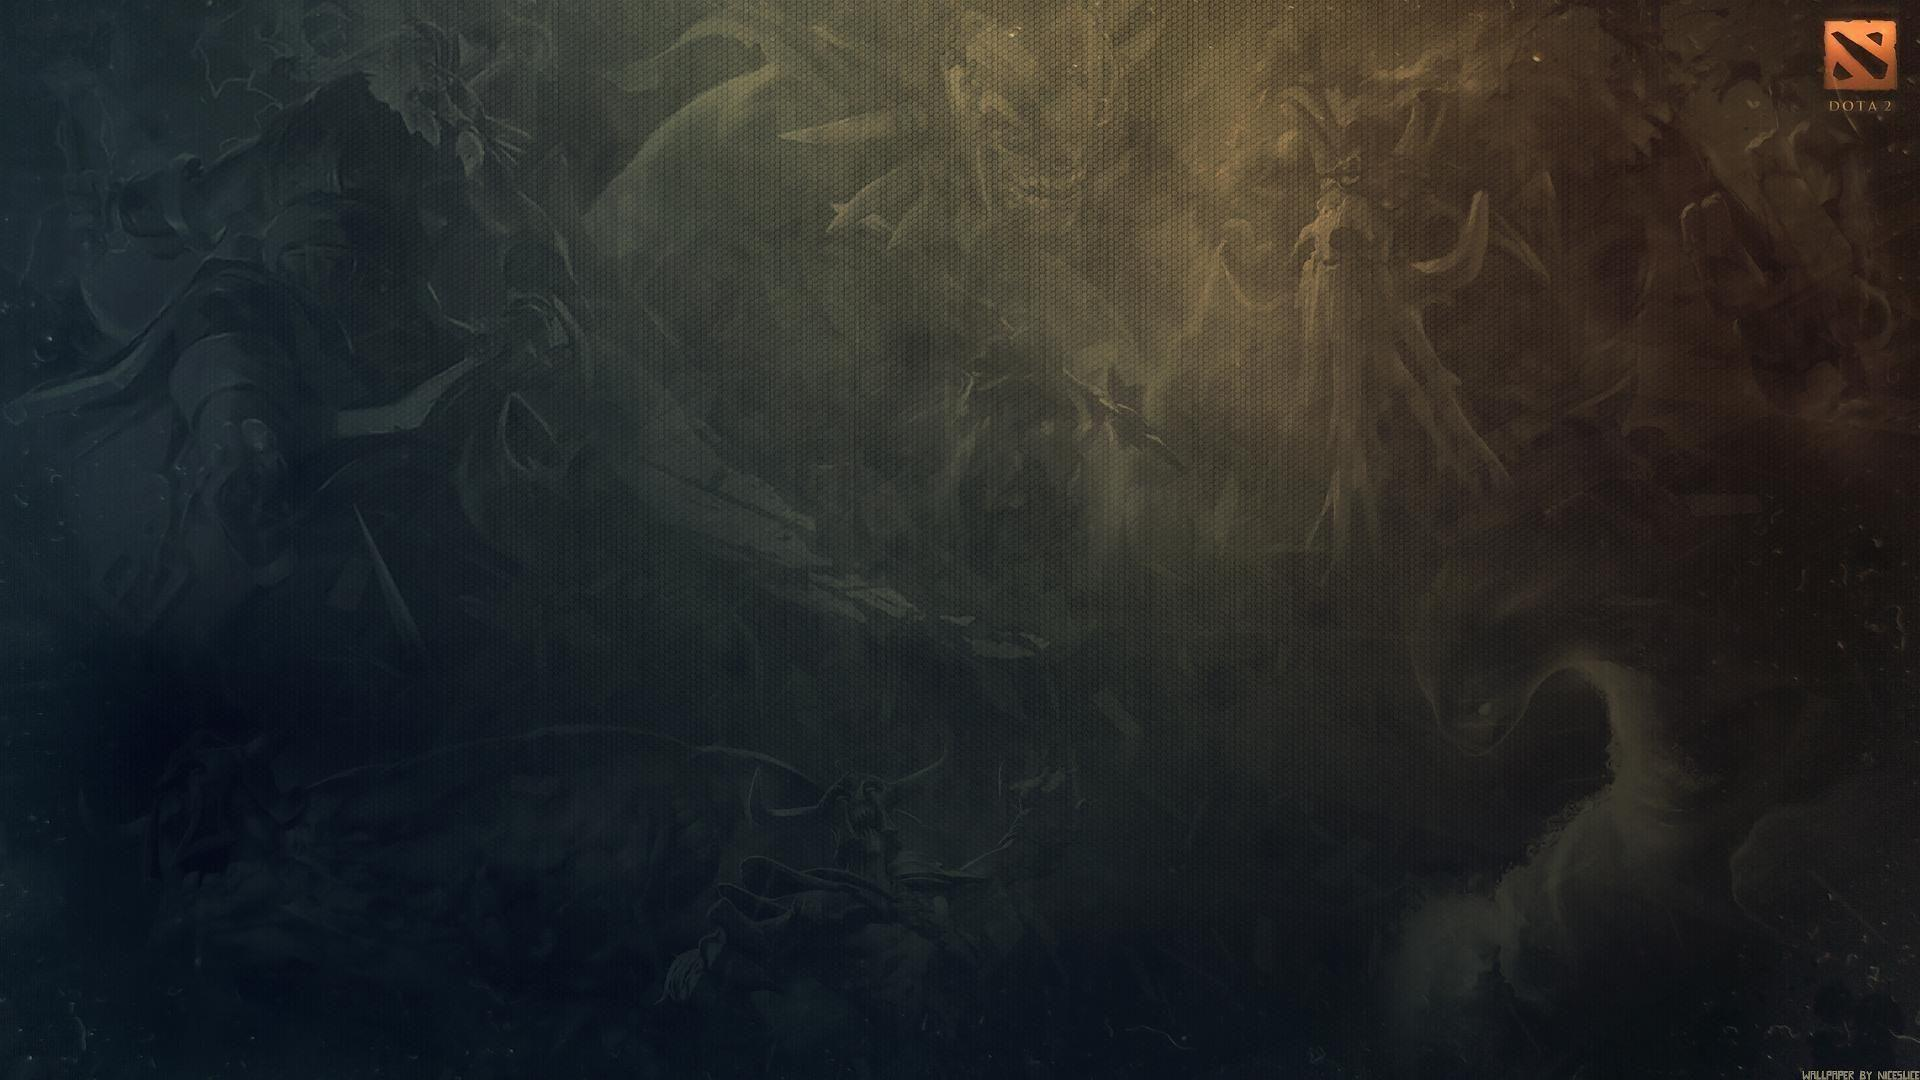 dark 1080p wallpaper material - photo #33